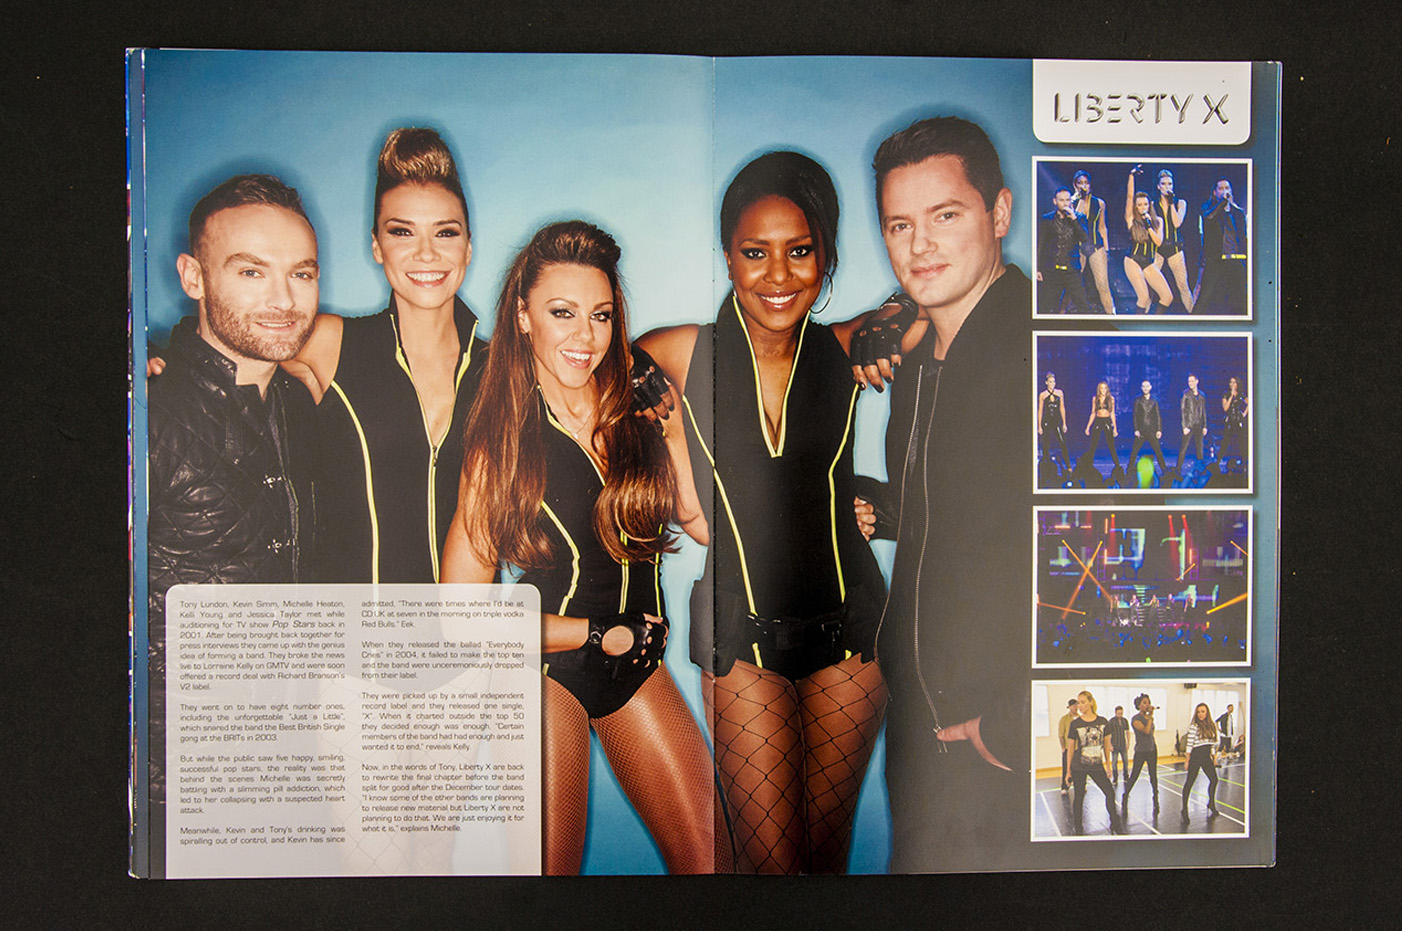 704ac2d815 We were commissioned by Global Merchandising Services to design the 2013  tour merchandise and programme for Big Reunion.